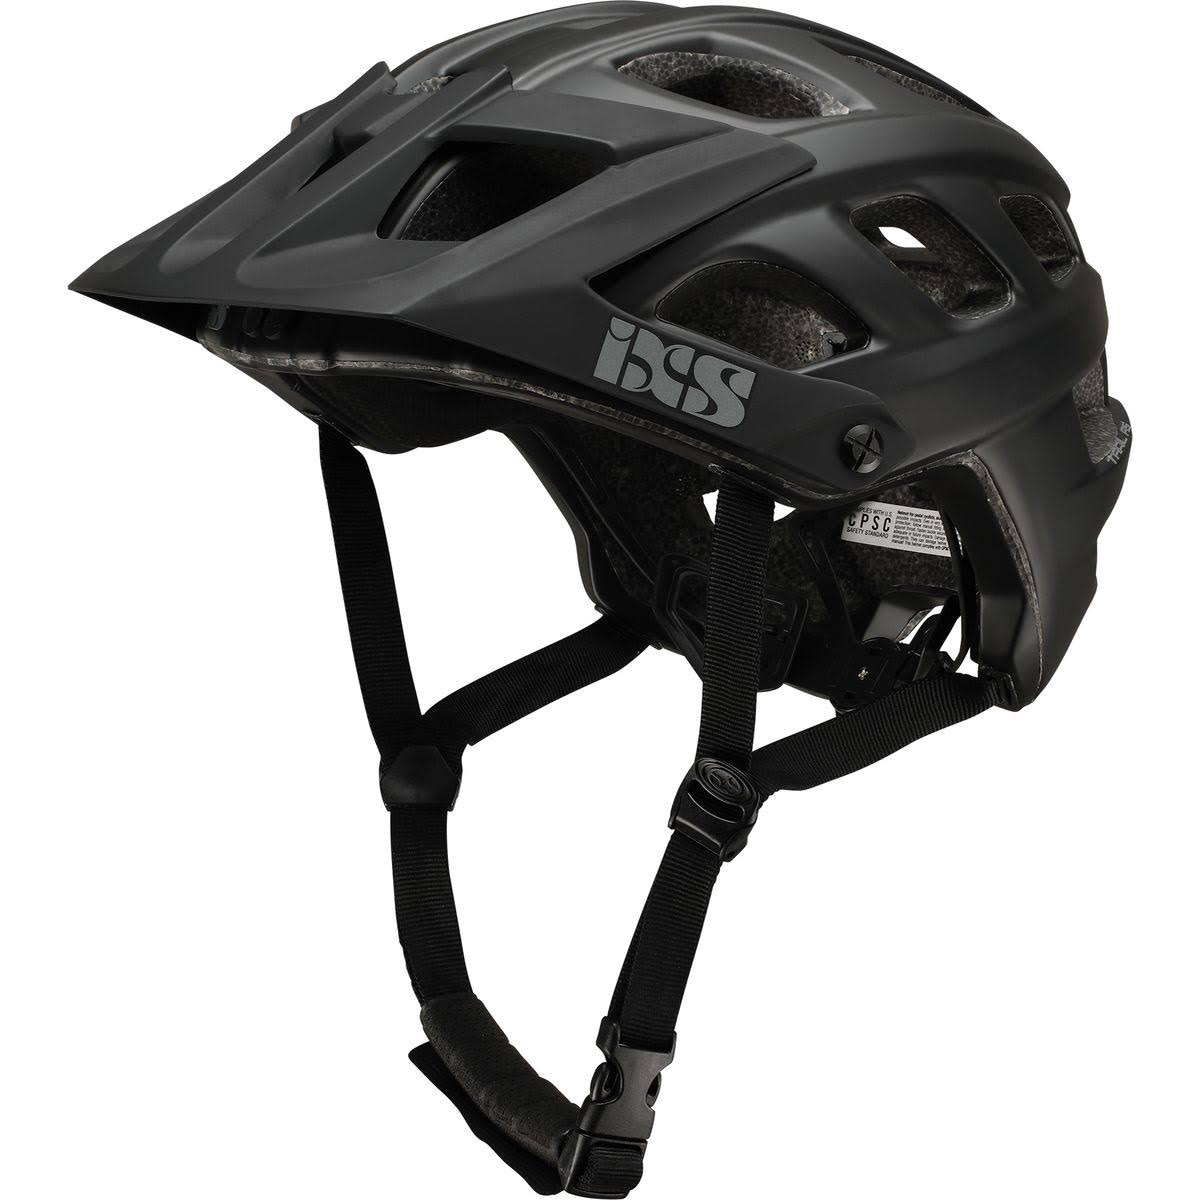 IXS Trail RS Evo Bike Helmet - Black, Small/Medium